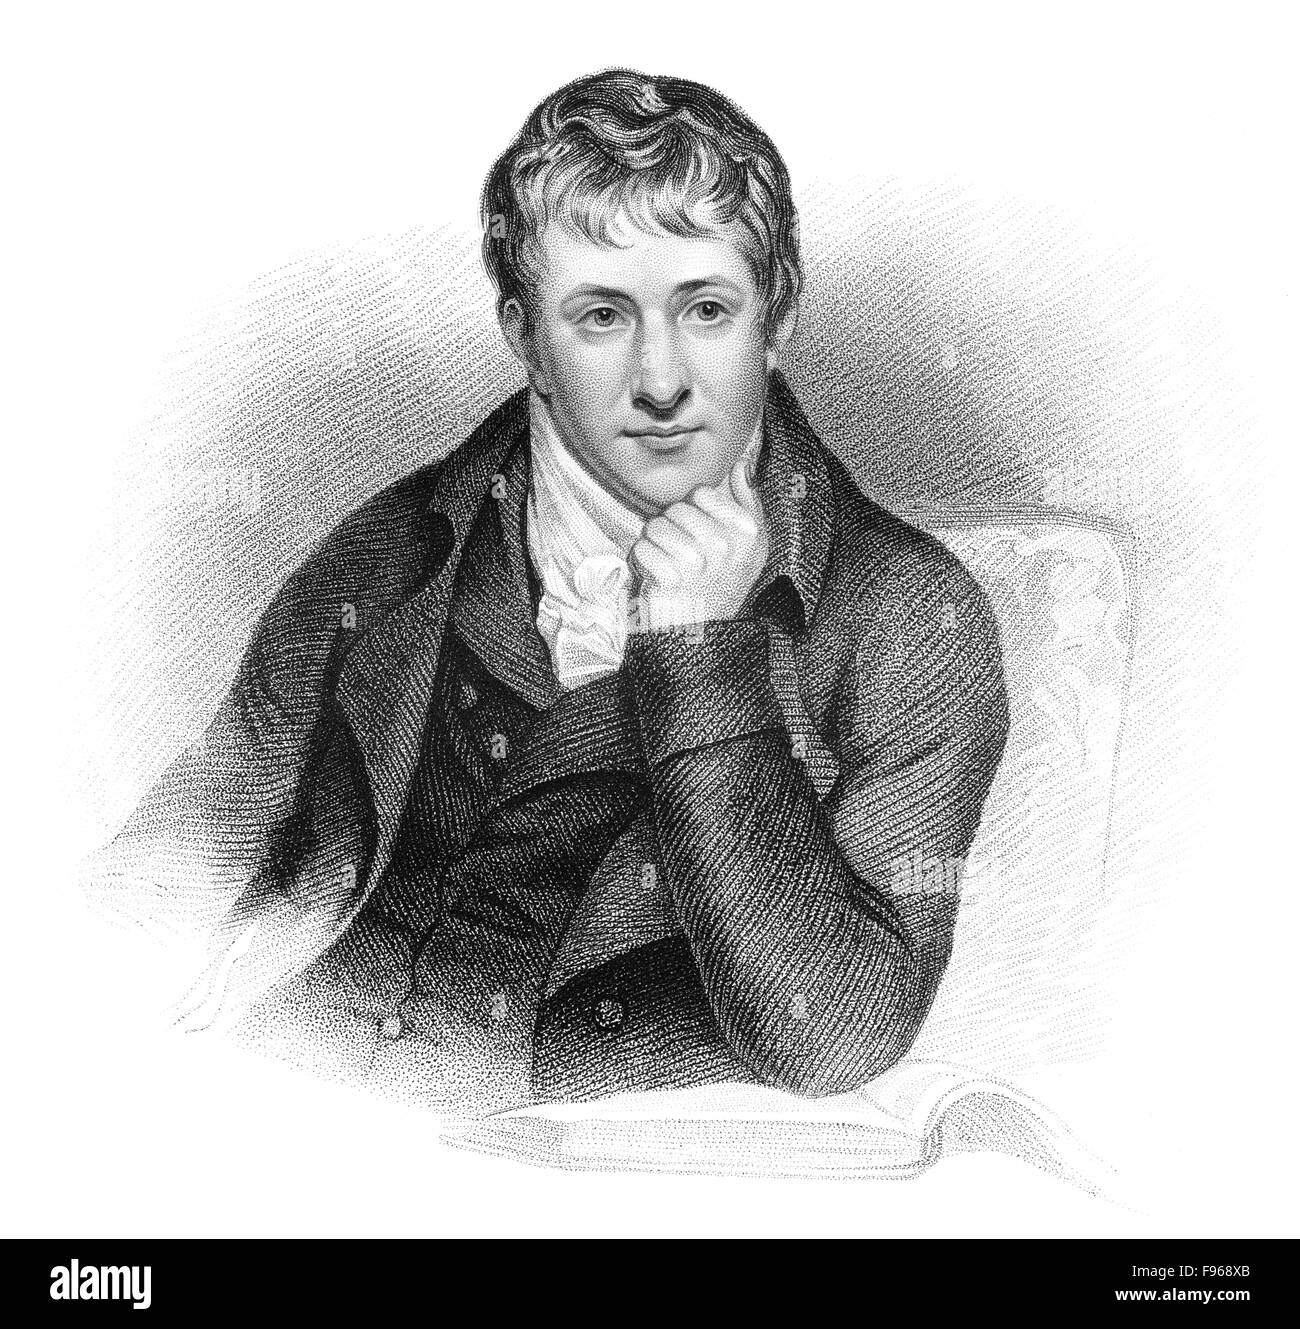 Sir Humphry Davy, 1778 - 1829, a Cornish chemist and inventor, Sir Humphry Davy, 1778 - 1829, ein englischer Chemiker - Stock Image